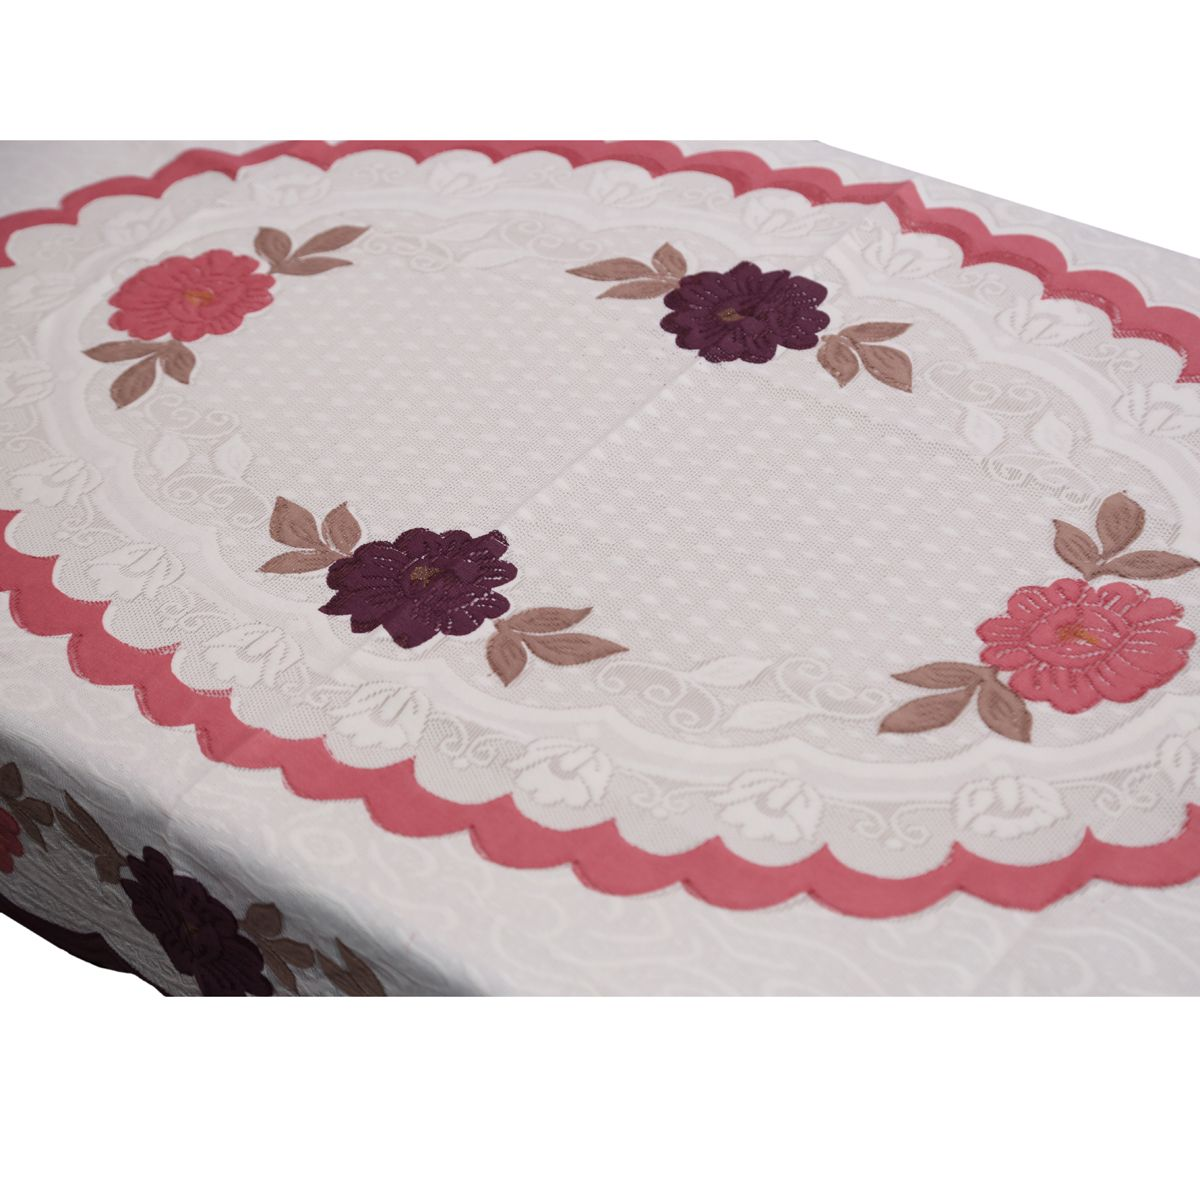 """Kuber Industriesâ""¢ Center Table Cover Cream Floral Design in Cloth 40*60 Inches - KU317 """